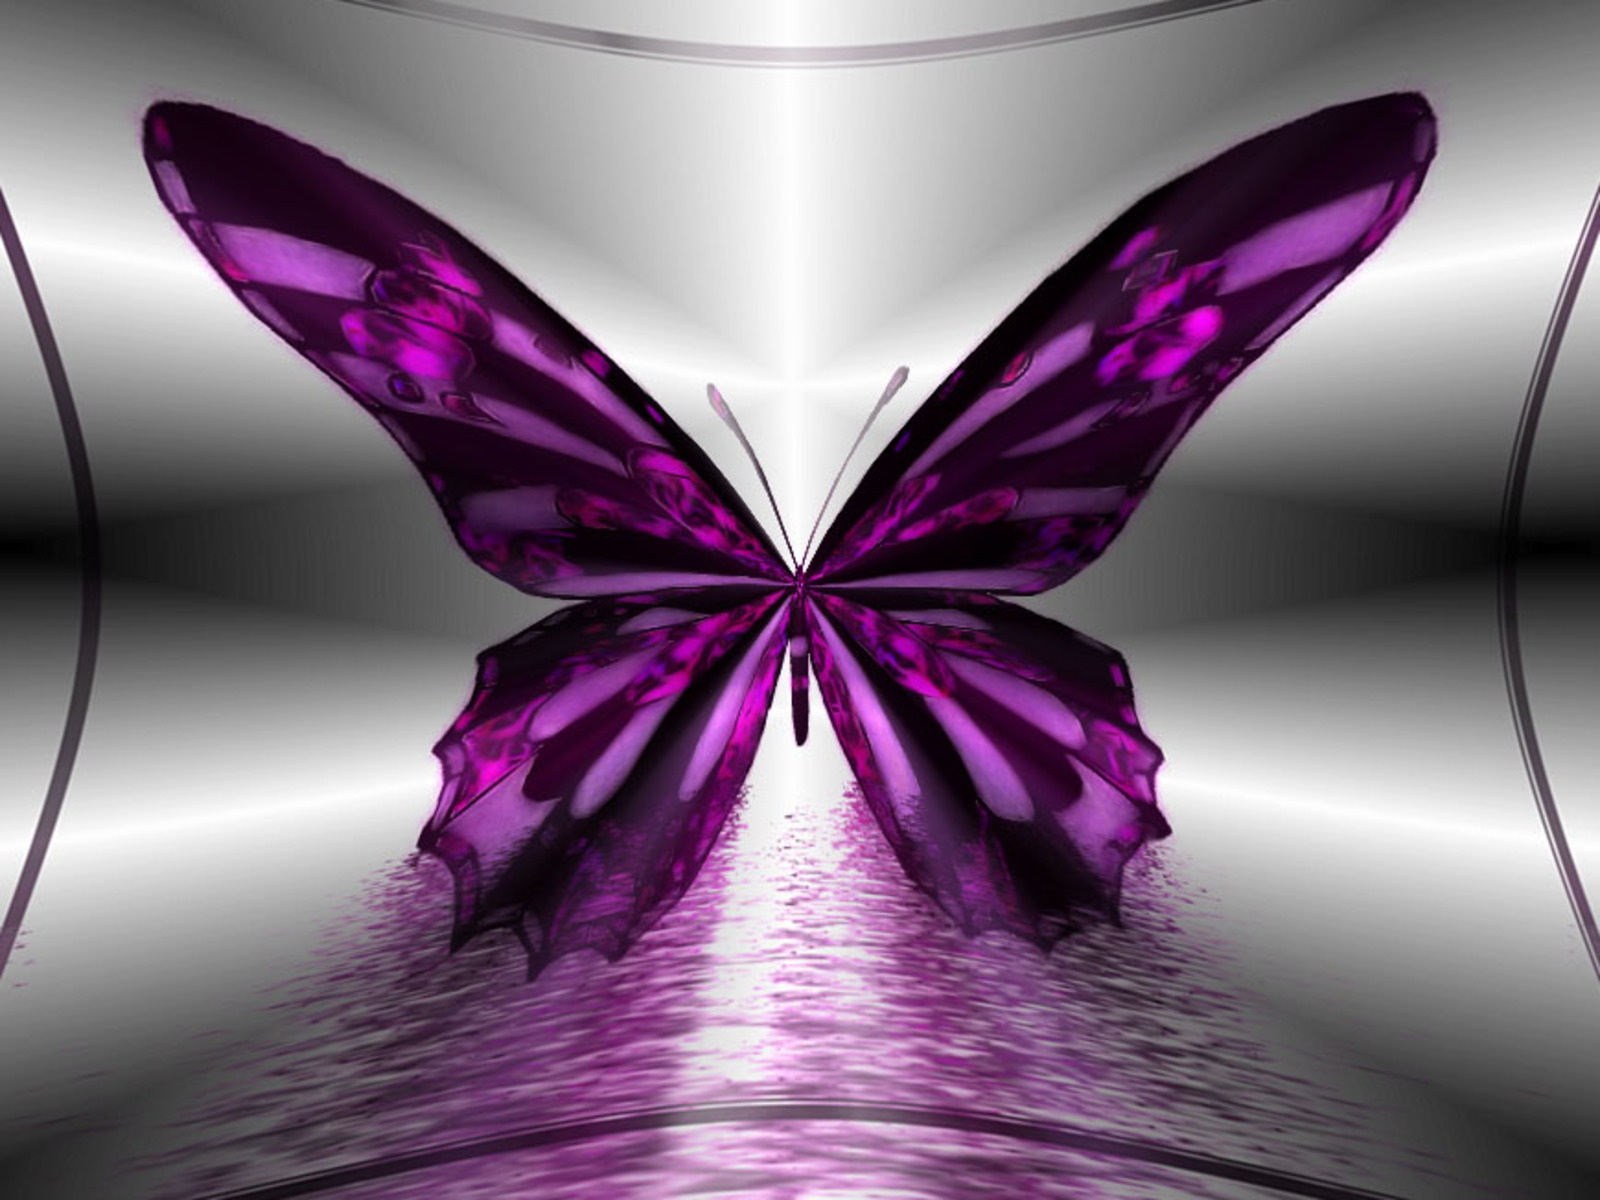 Wallpapers - HD Desktop Wallpapers Free Online: Butterfly ...